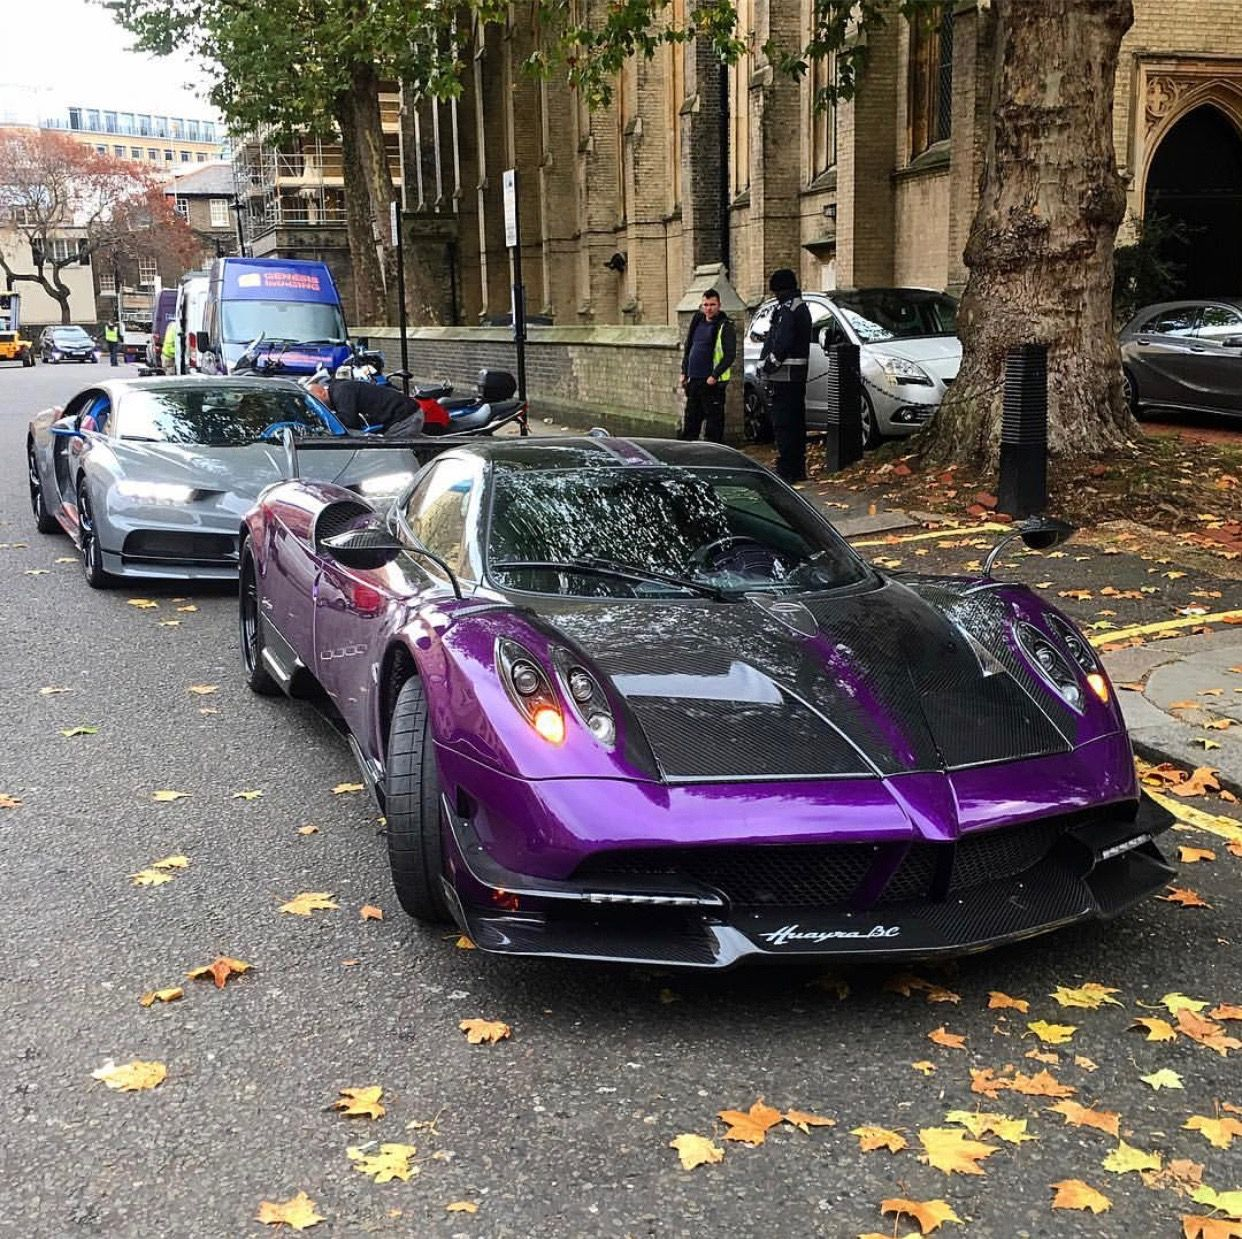 pagani huayra bc painted in purple w/ exposed carbon fiber and a